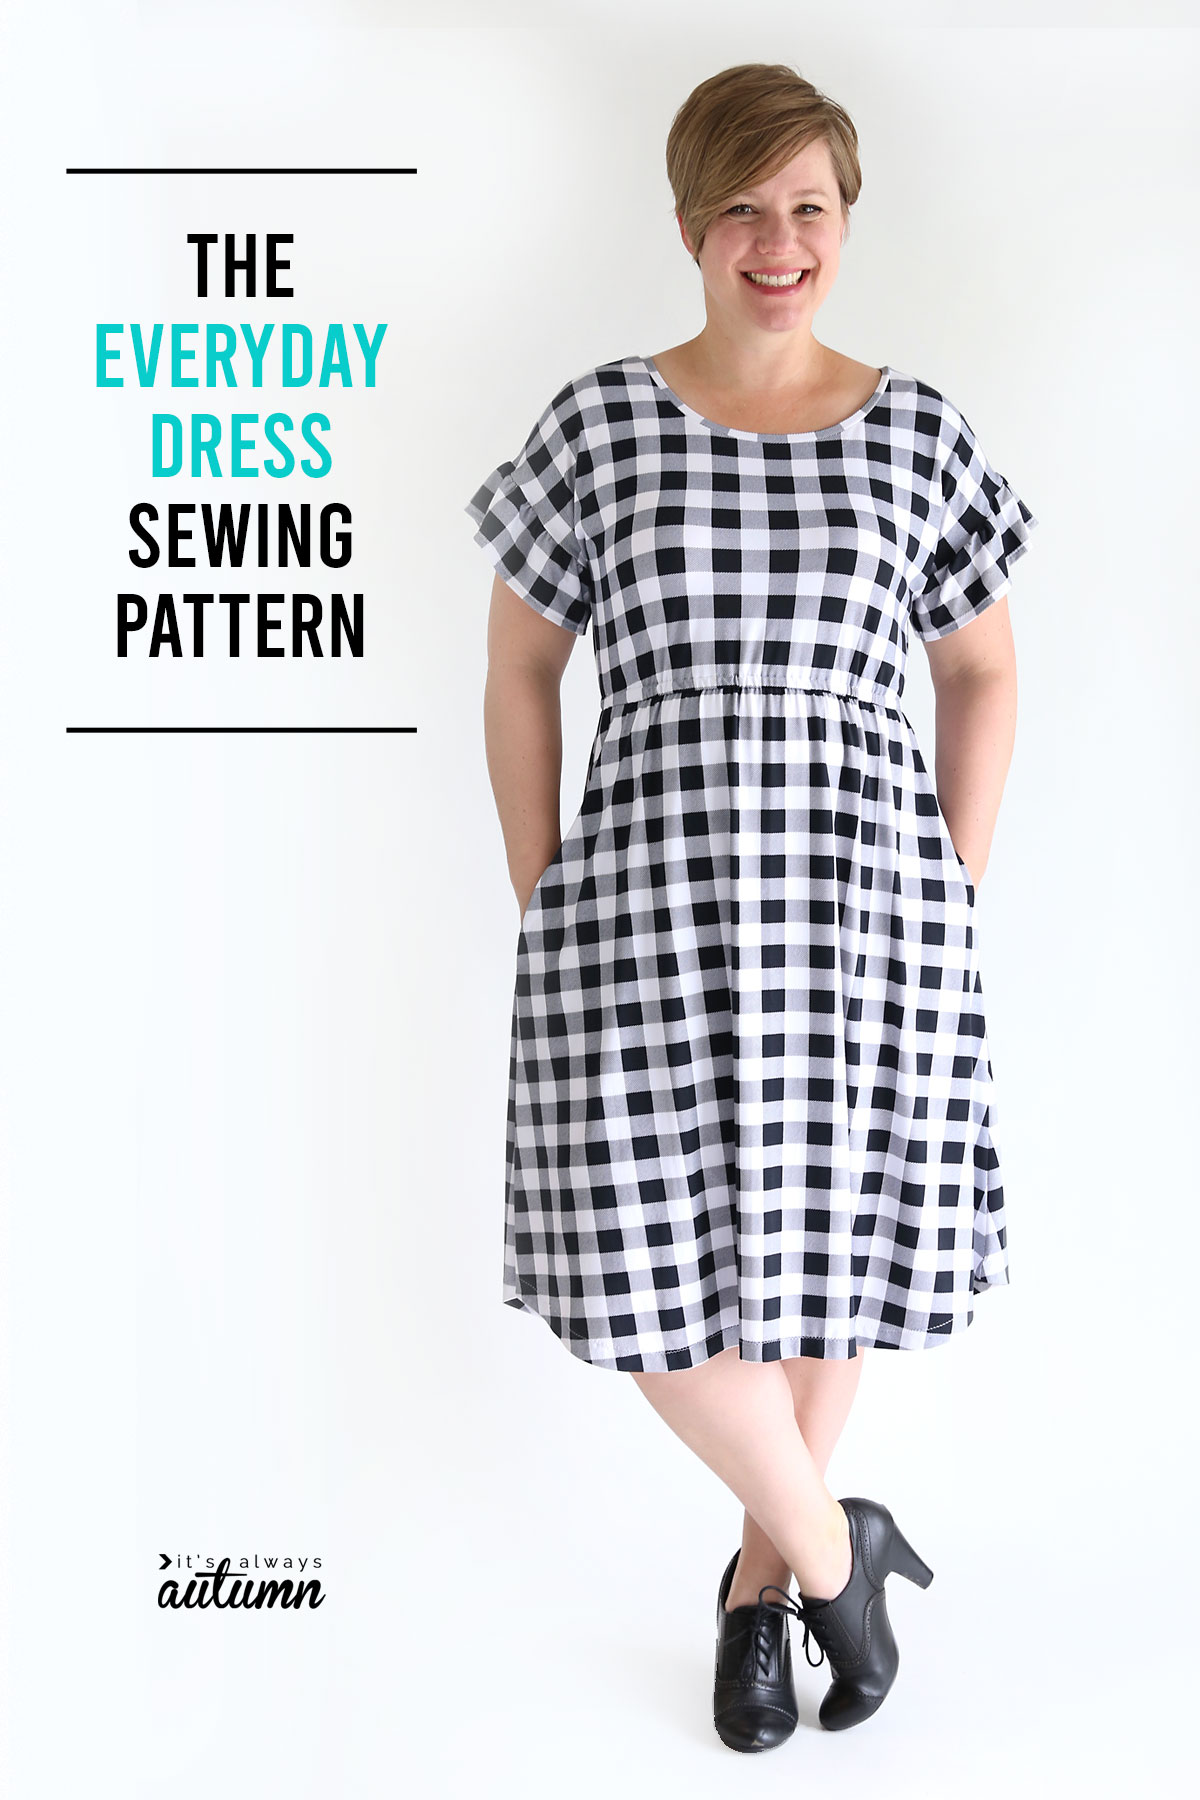 The Everyday Dress sewing pattern in women's size L.